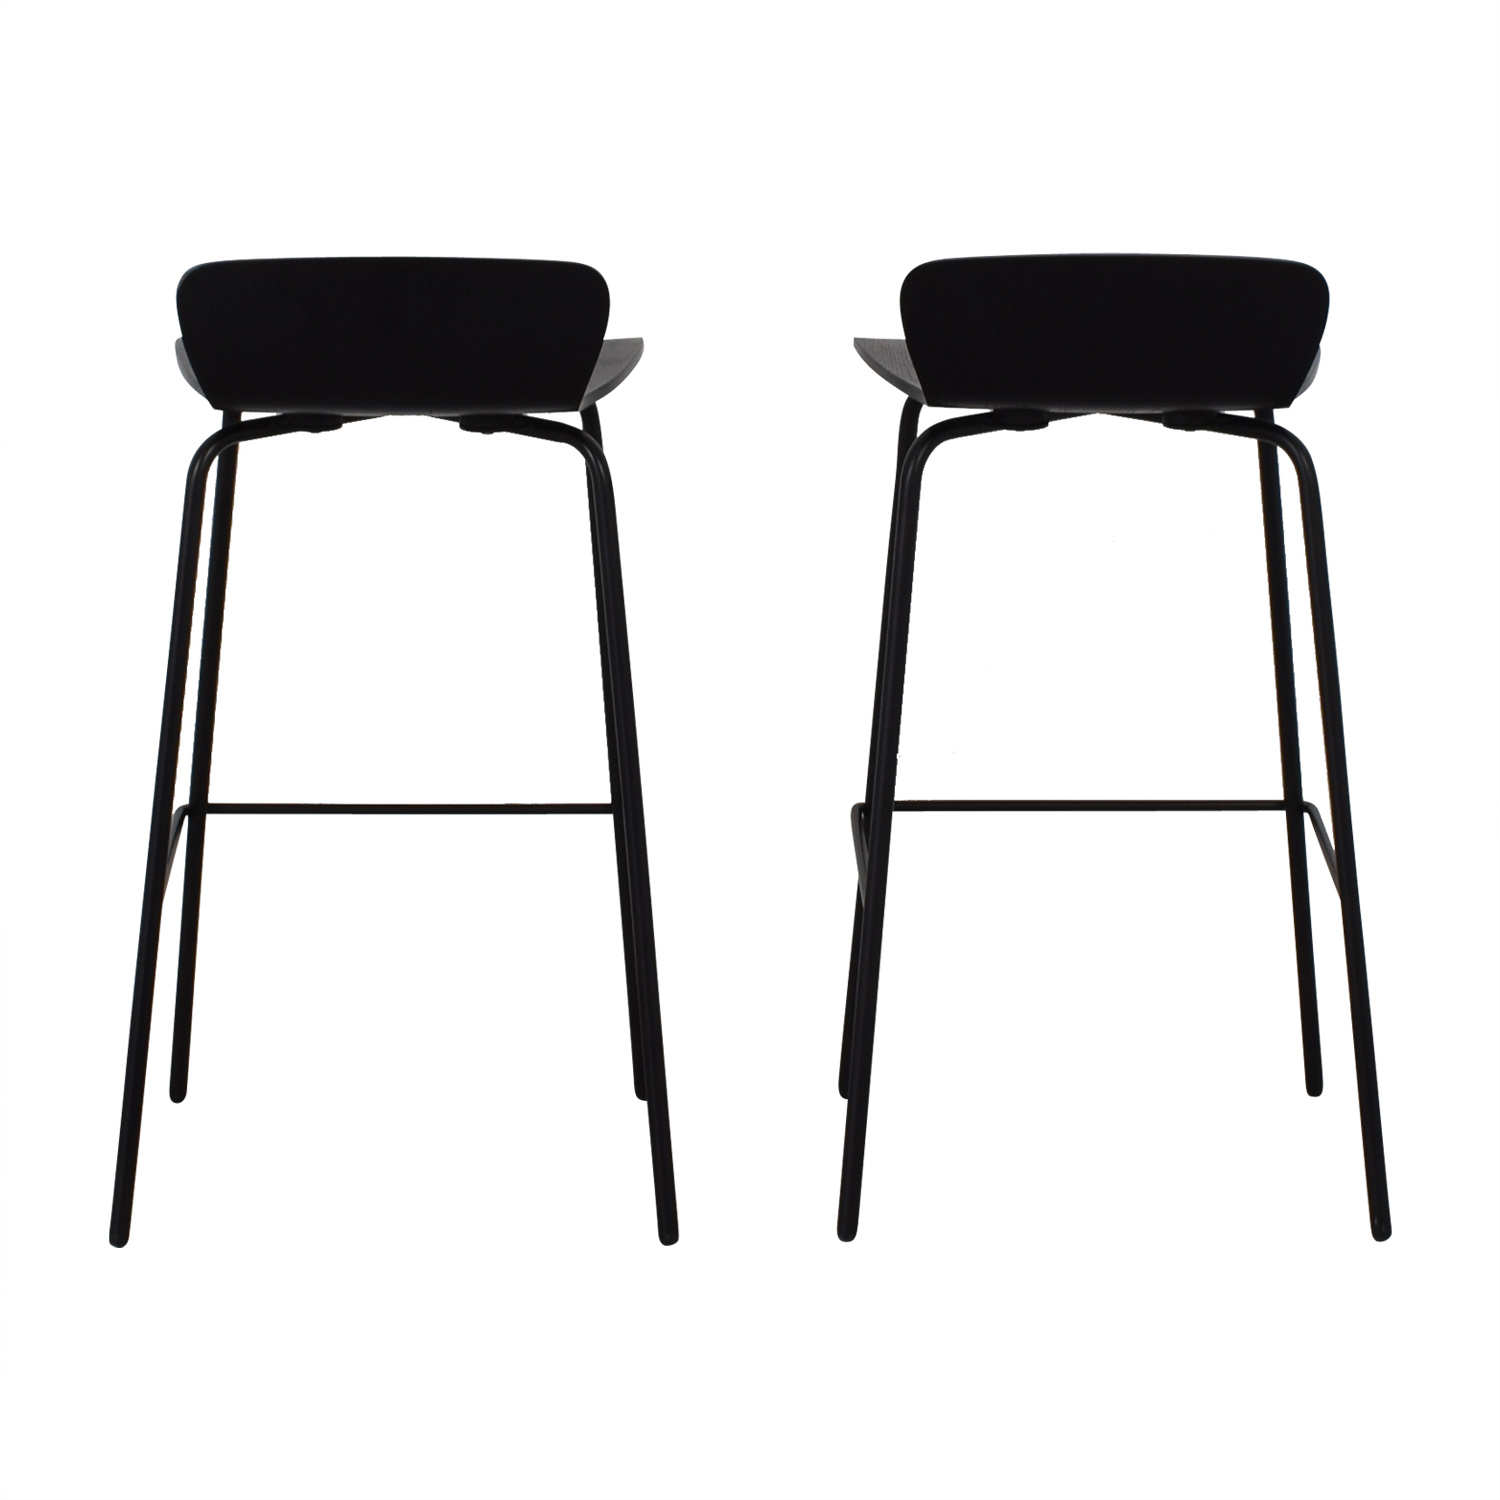 buy Crate & Barrel Felix Black Counter Stools Crate & Barrel Chairs